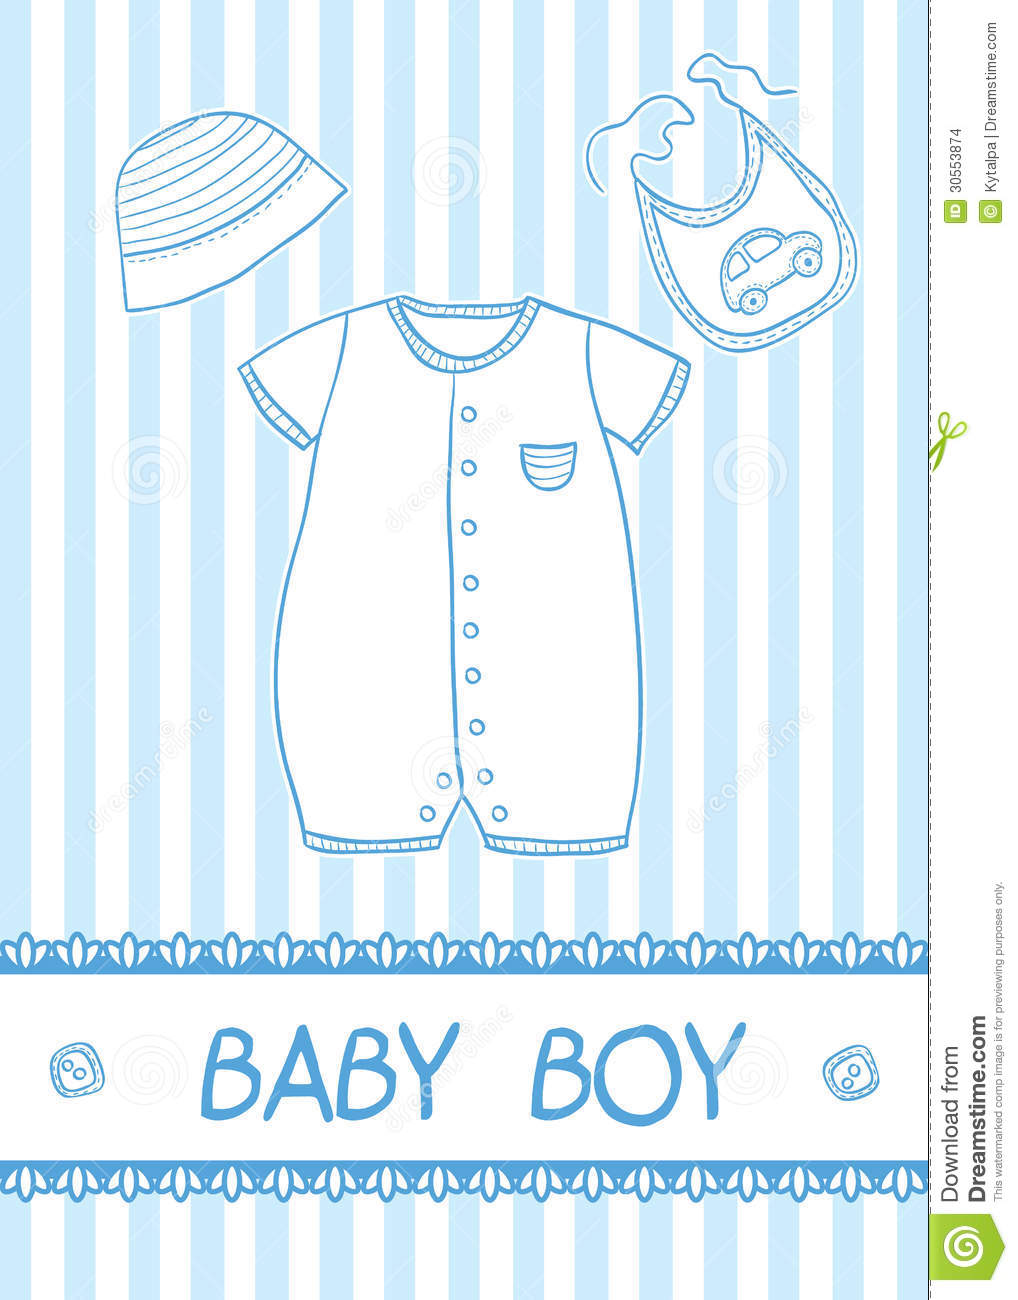 Baby Boy Card Stock Images - Image: 30553874